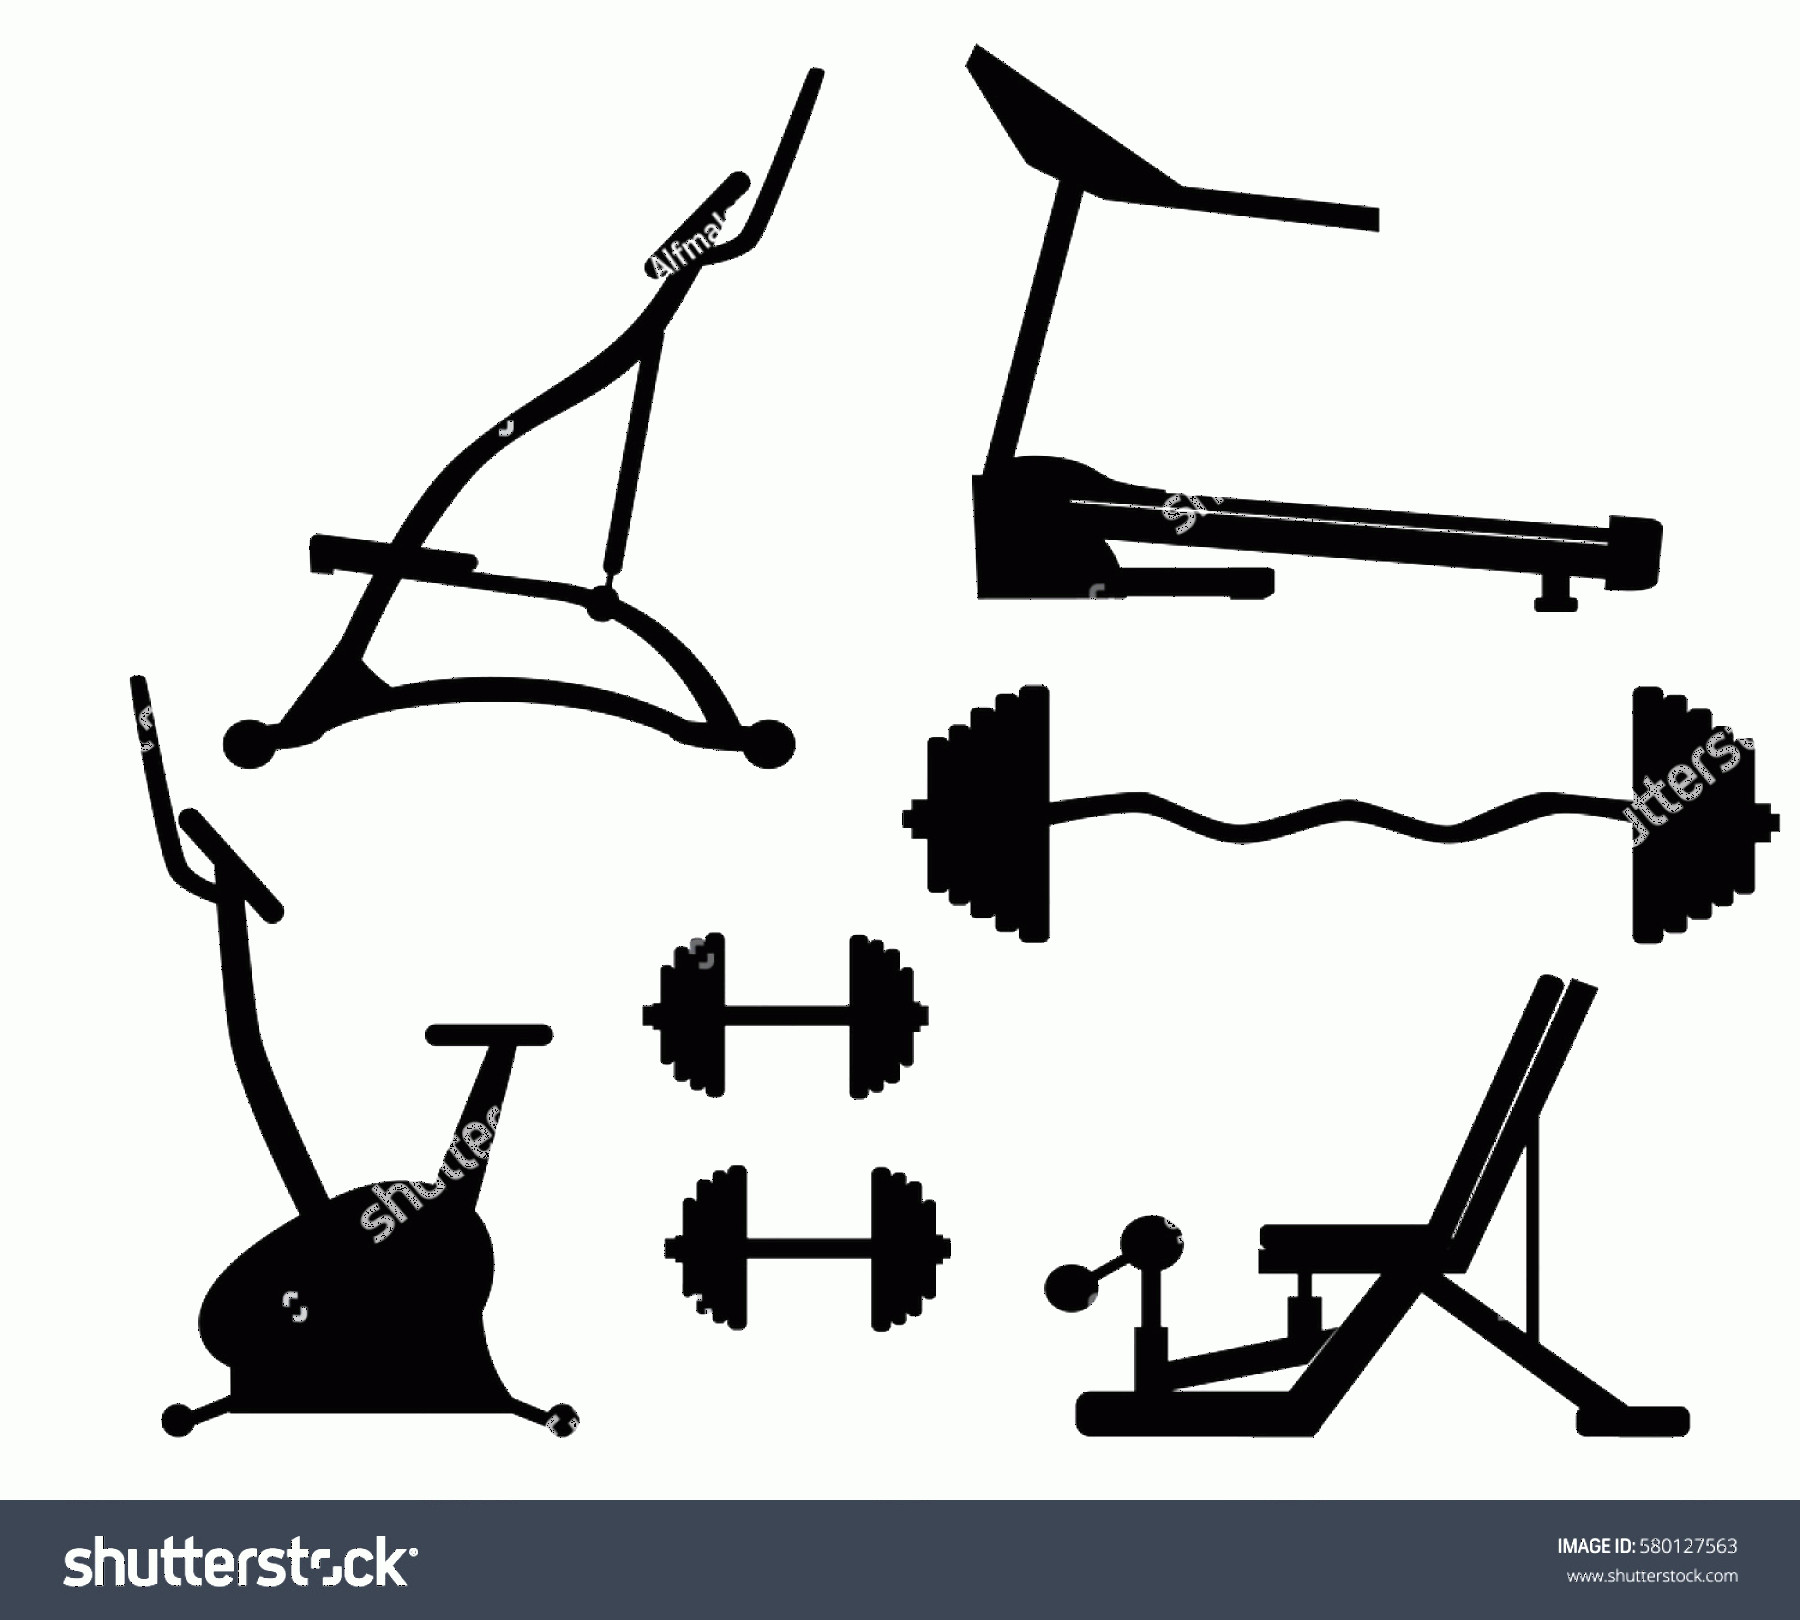 Vector Gym Equipment: Exercise Machine Gym Equipment Workout Machines